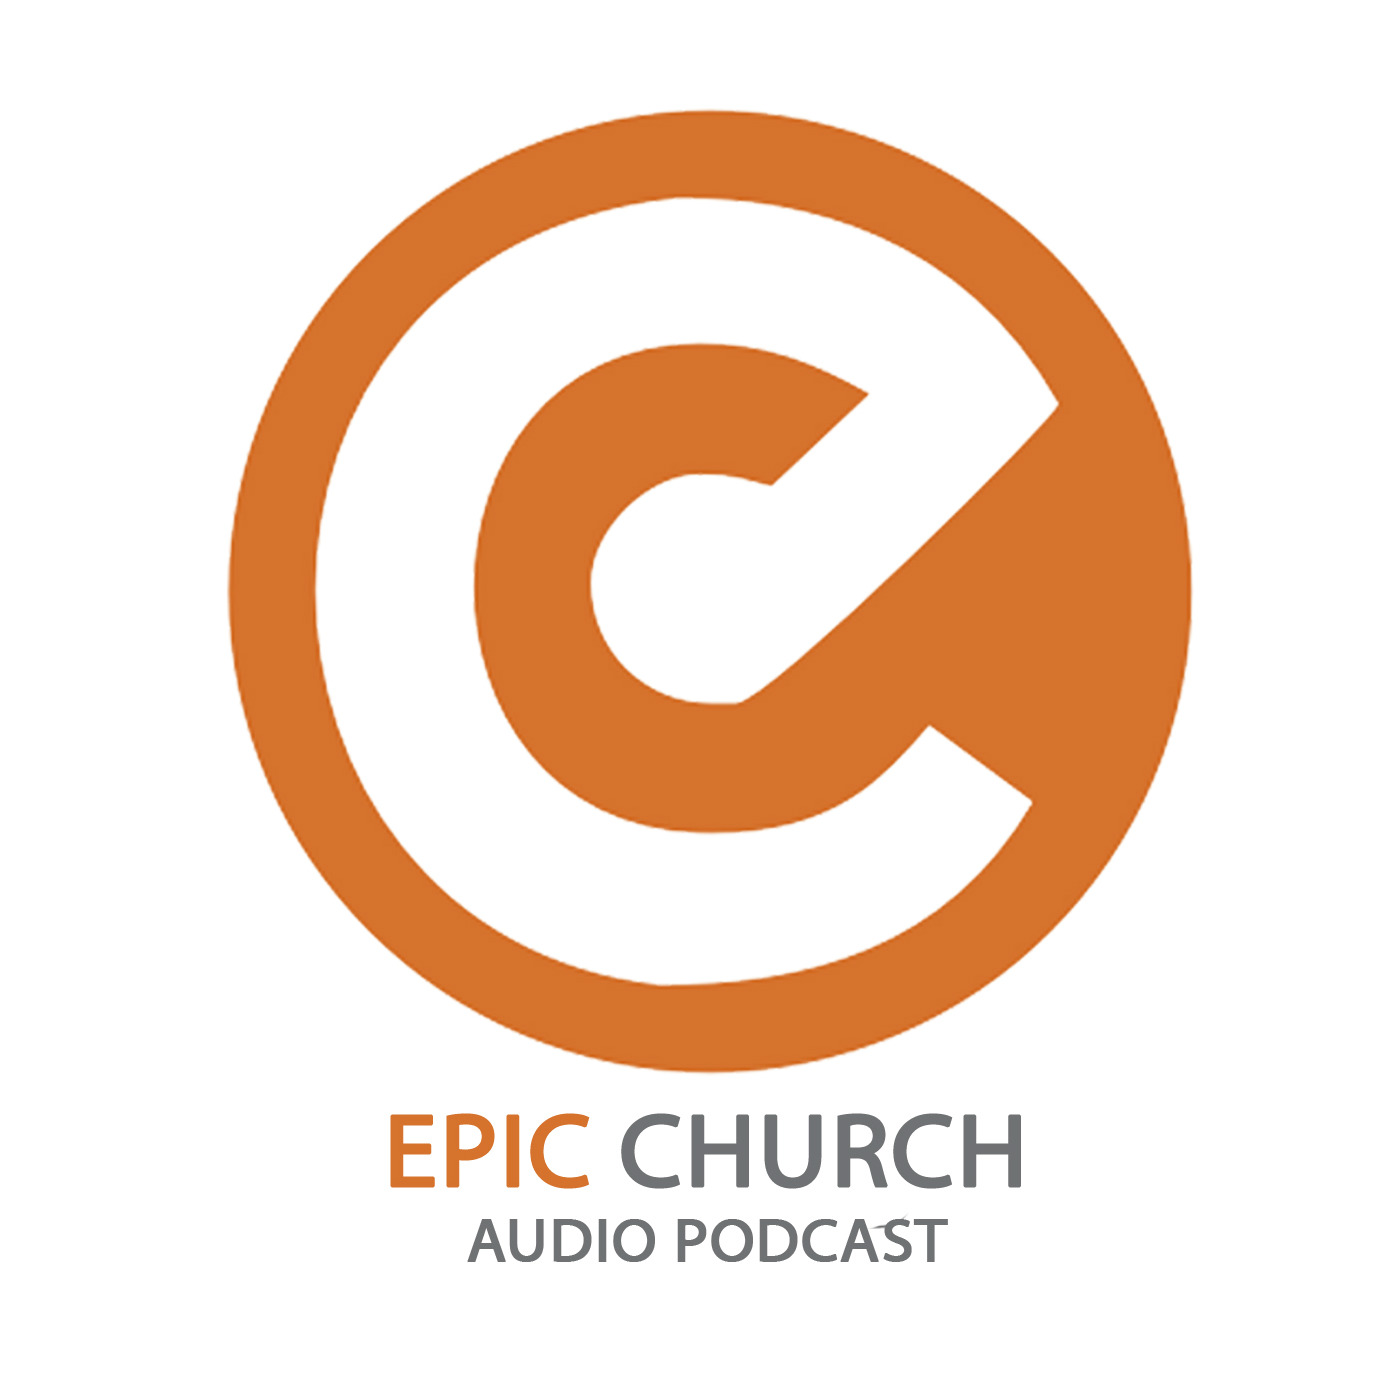 Epic Church (Buffalo, NY)